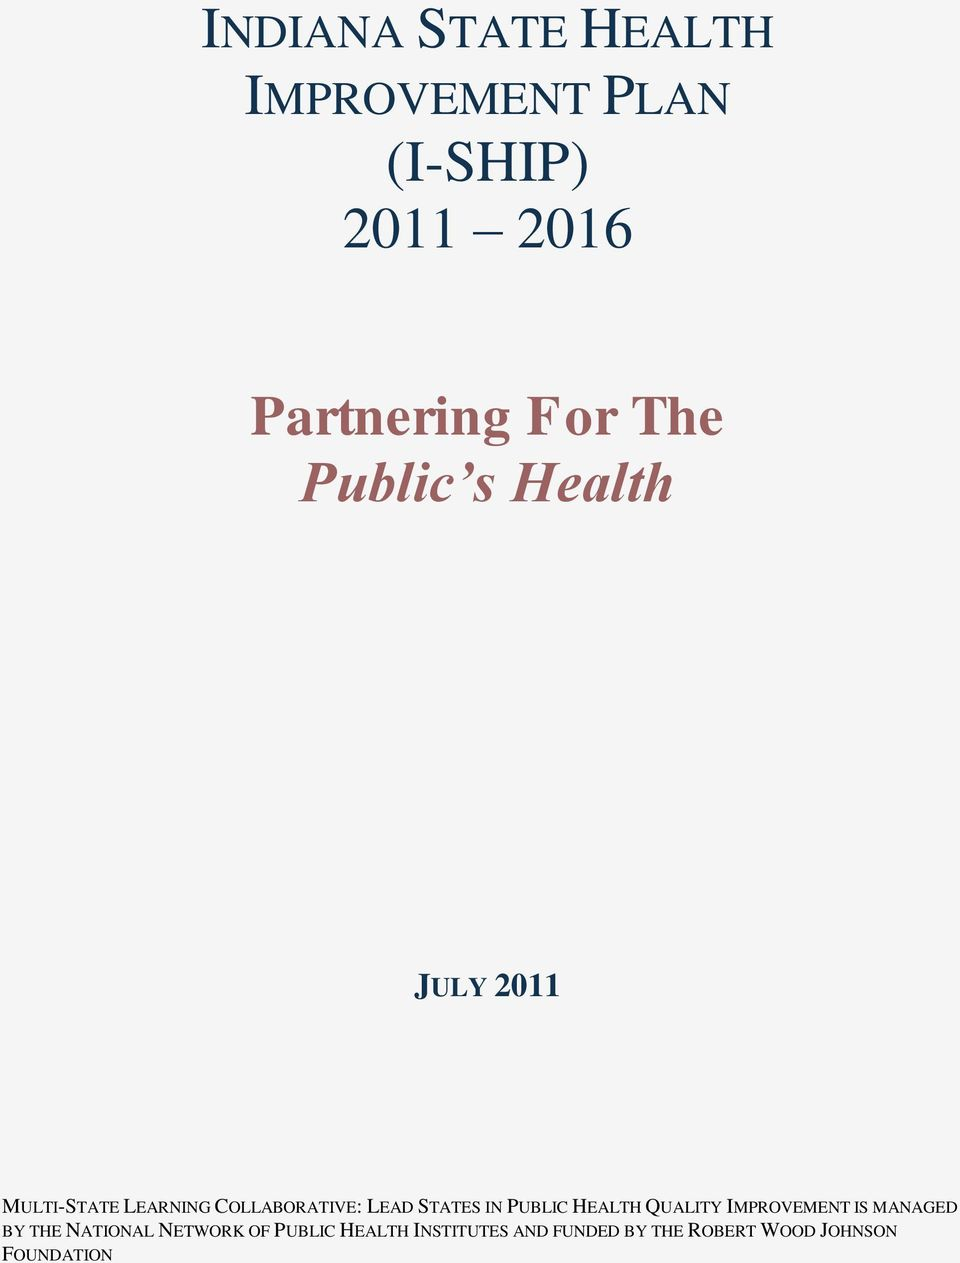 STATES IN PUBLIC HEALTH QUALITY IMPROVEMENT IS MANAGED BY THE NATIONAL